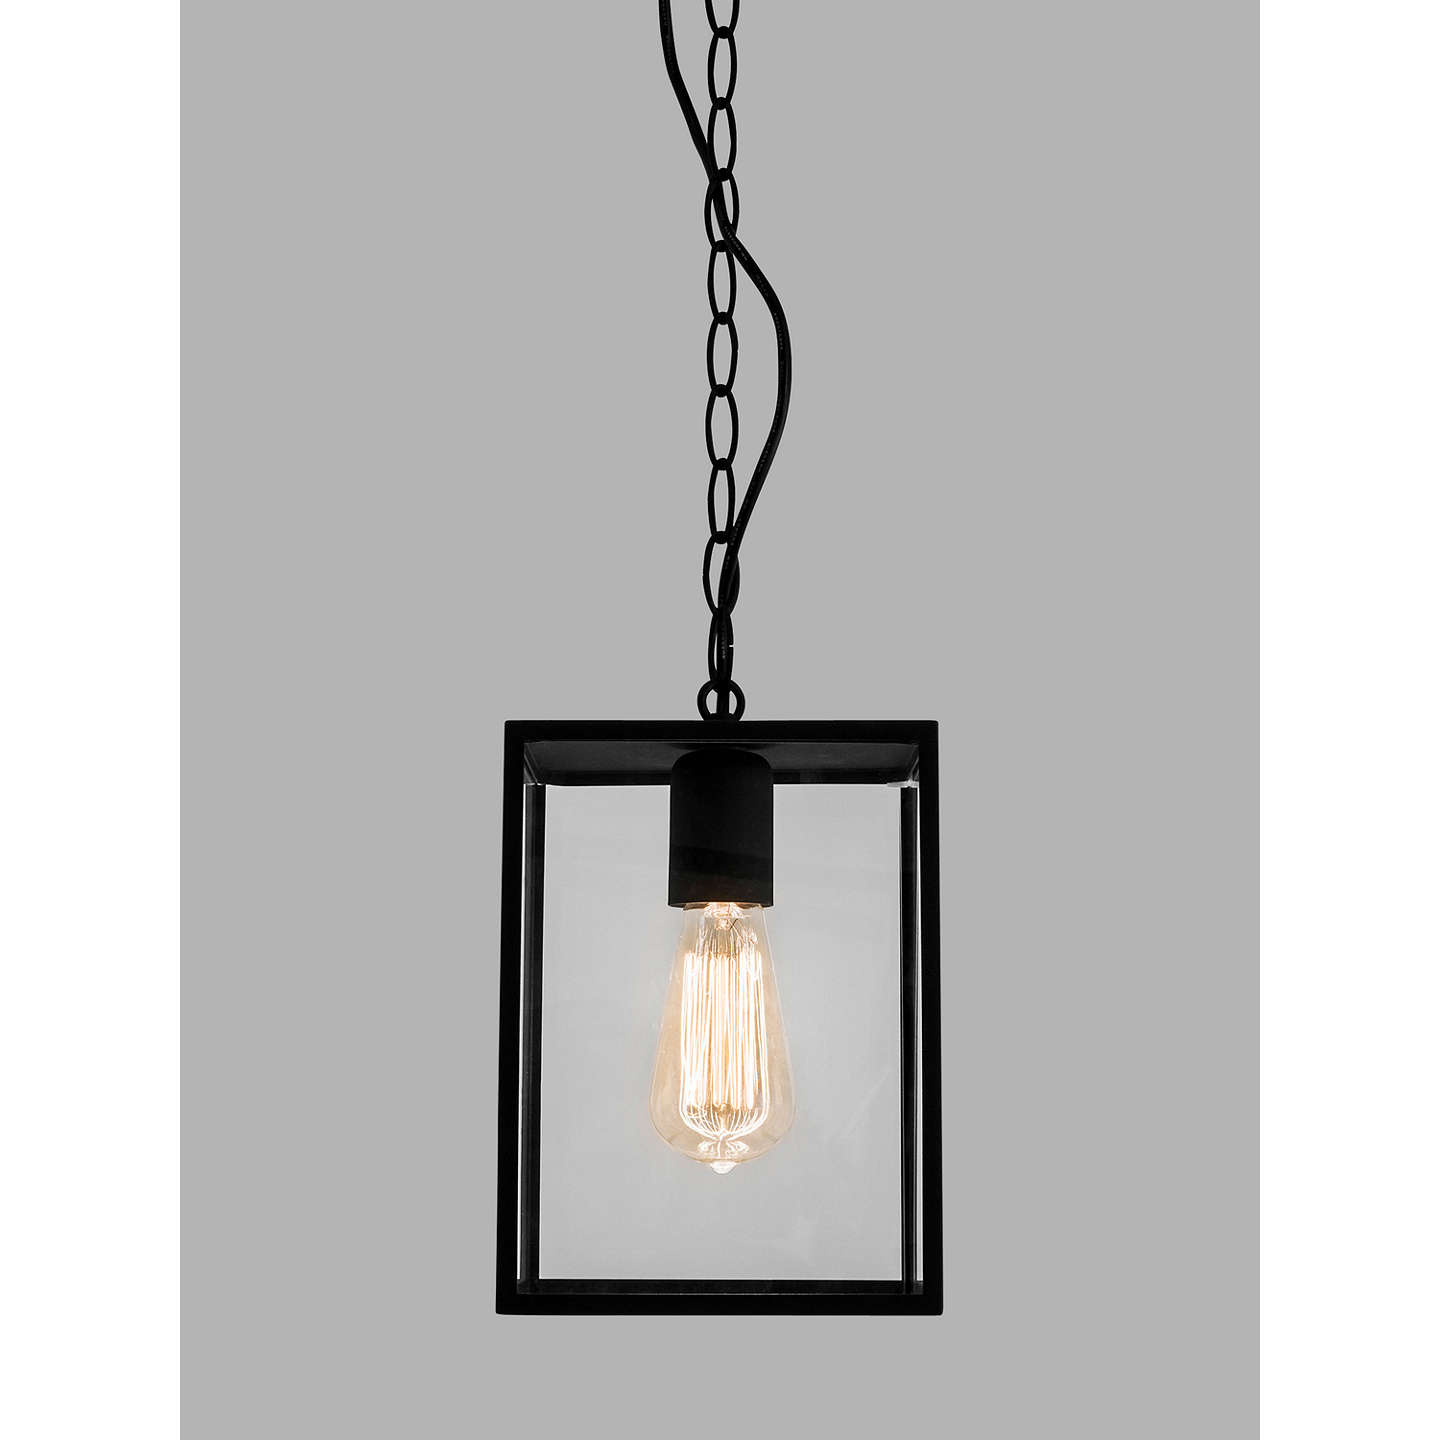 Astro homefield outdoor pendant ceiling light black at john lewis buyastro homefield outdoor pendant ceiling light black online at johnlewis mozeypictures Choice Image